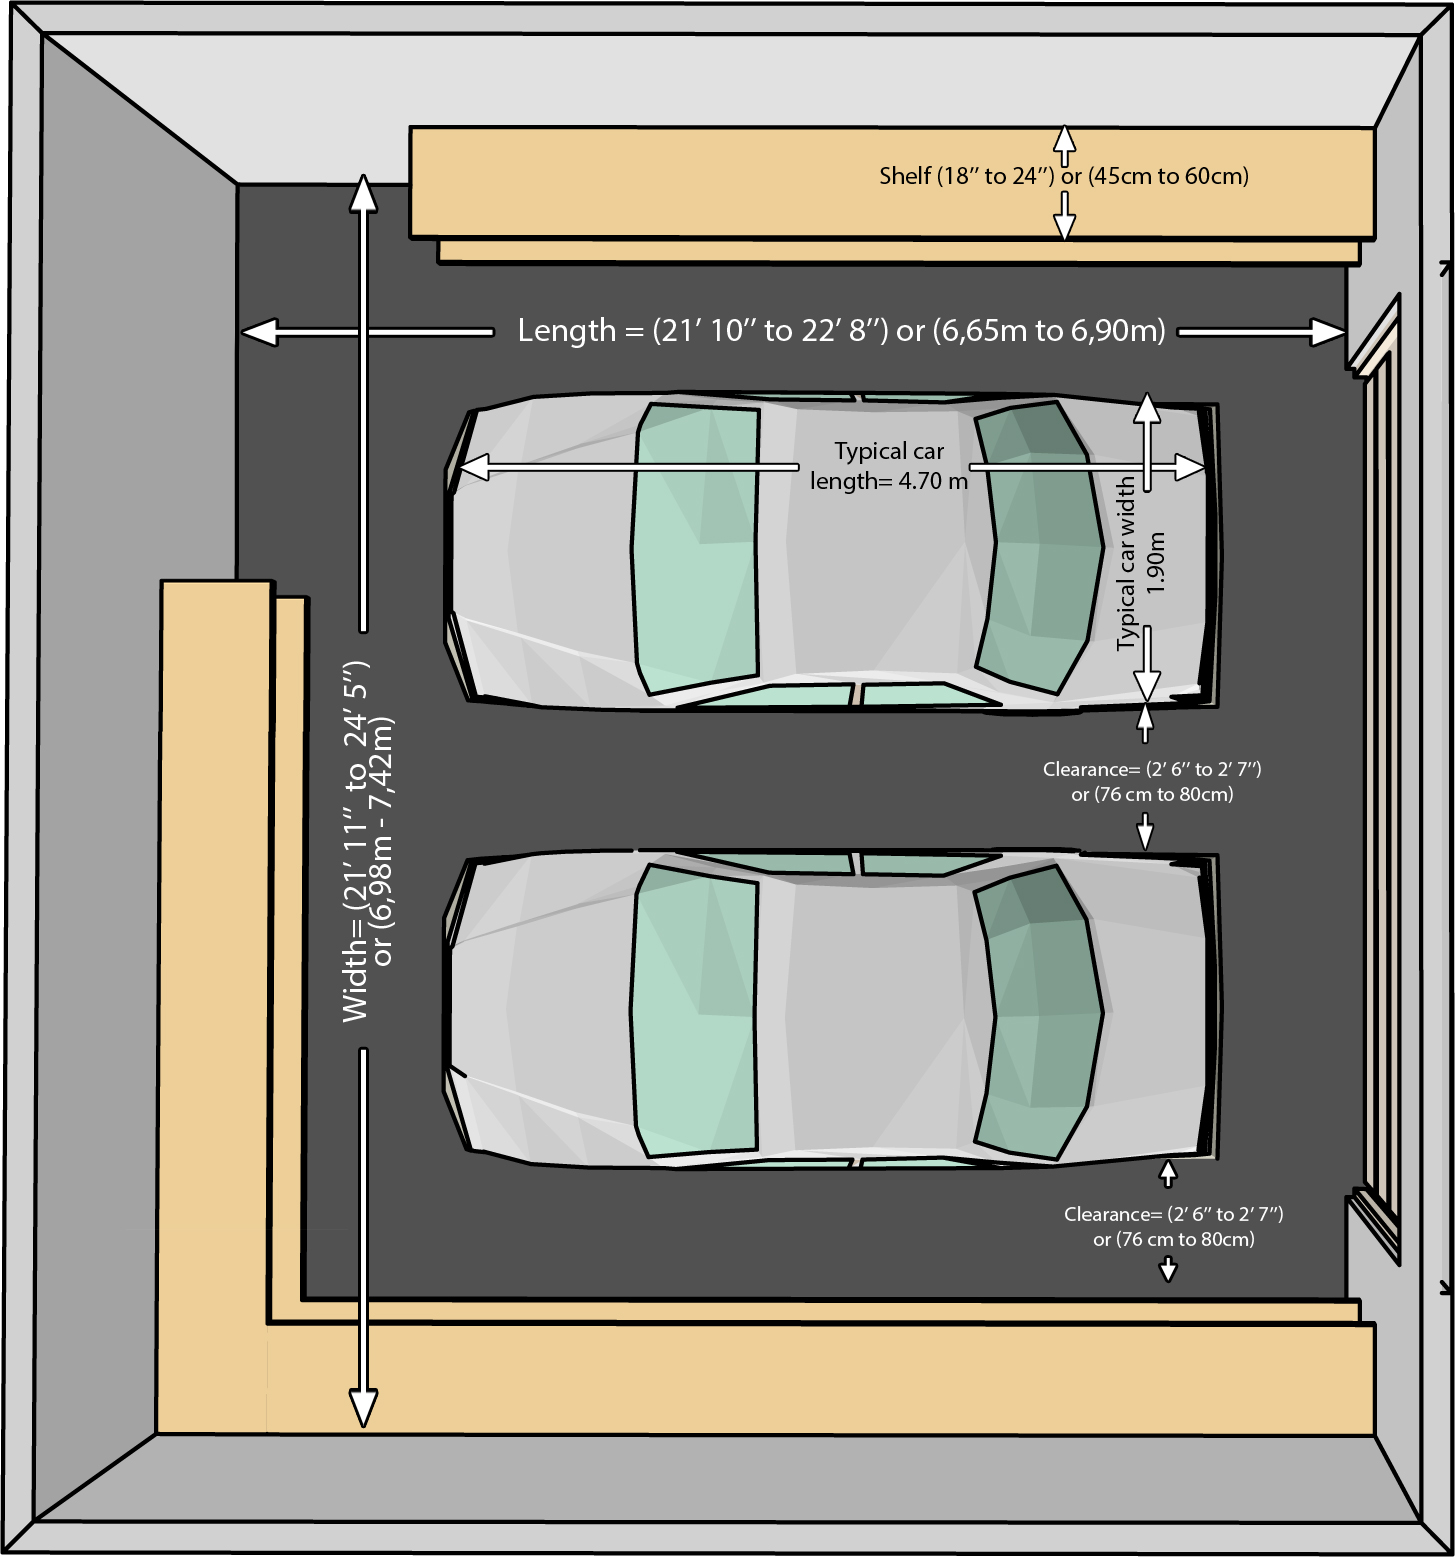 The Dimensions Of An One Car And A Two Car Garage Interiors Inside Ideas Interiors design about Everything [magnanprojects.com]